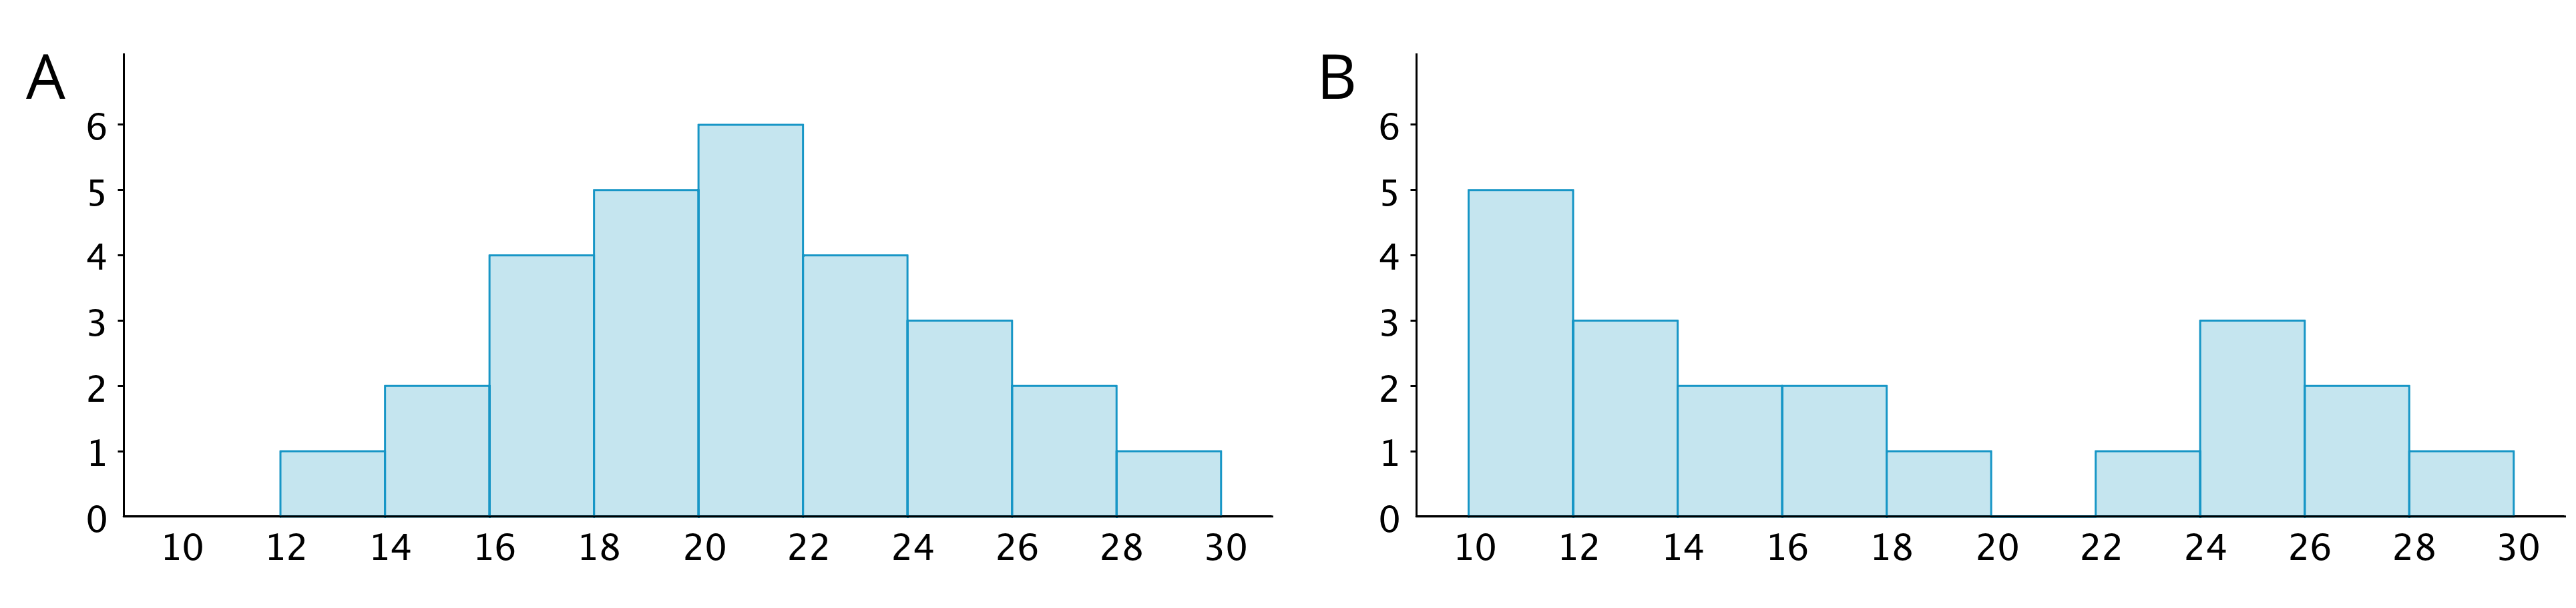 "Two histograms, labeled ""A"" and ""B"" where the horizontal axis has the numbers 10 through 30, in increments of 2, indicated and on the vertical axis, the numbers 0 through 6 are indicated. The data represented by the bars on histogram ""A"" are: 10 up to 12, 0; 12 up to 14, 1; 14 up to 16, 2, 16 up to 18, 4; 18 up to 20, 5; 20 up to 22, 6; 22 up to 24, 4, 24 up to 26, 3; 26 up to 28, 2; 28 up to 30, 1. The data represented by the bars on histogram ""B"" are: 10 up to 12, 5; 12 up to 14, 3; 14 up to 16, 2; 16 up to 18, 2; 18 up to 20, 1; 20 up to 22, 0; 22 up to 24, 1; 24 up to 26, 3; 26 up to 28, 2; 28 up to 30, 1."